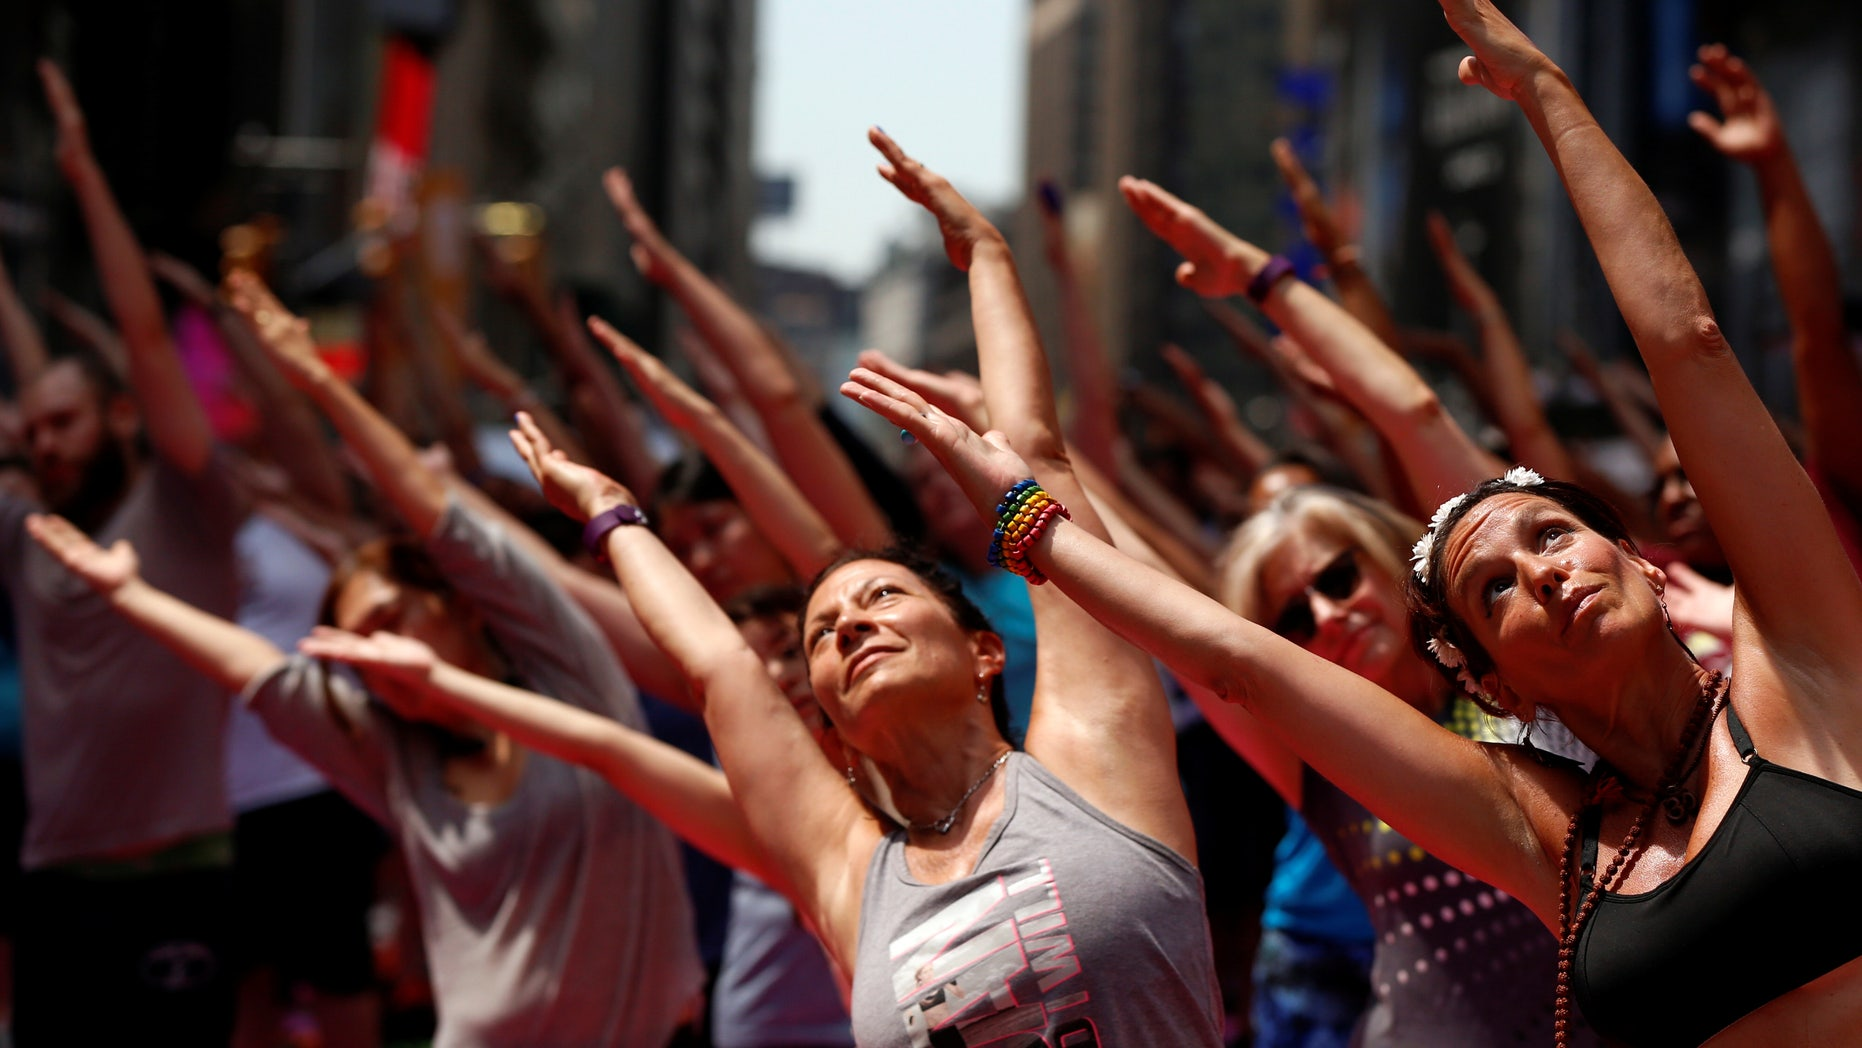 People participate in a yoga class during the 14th Annual Solstice in Times Square event in New York, U.S., June 20, 2016